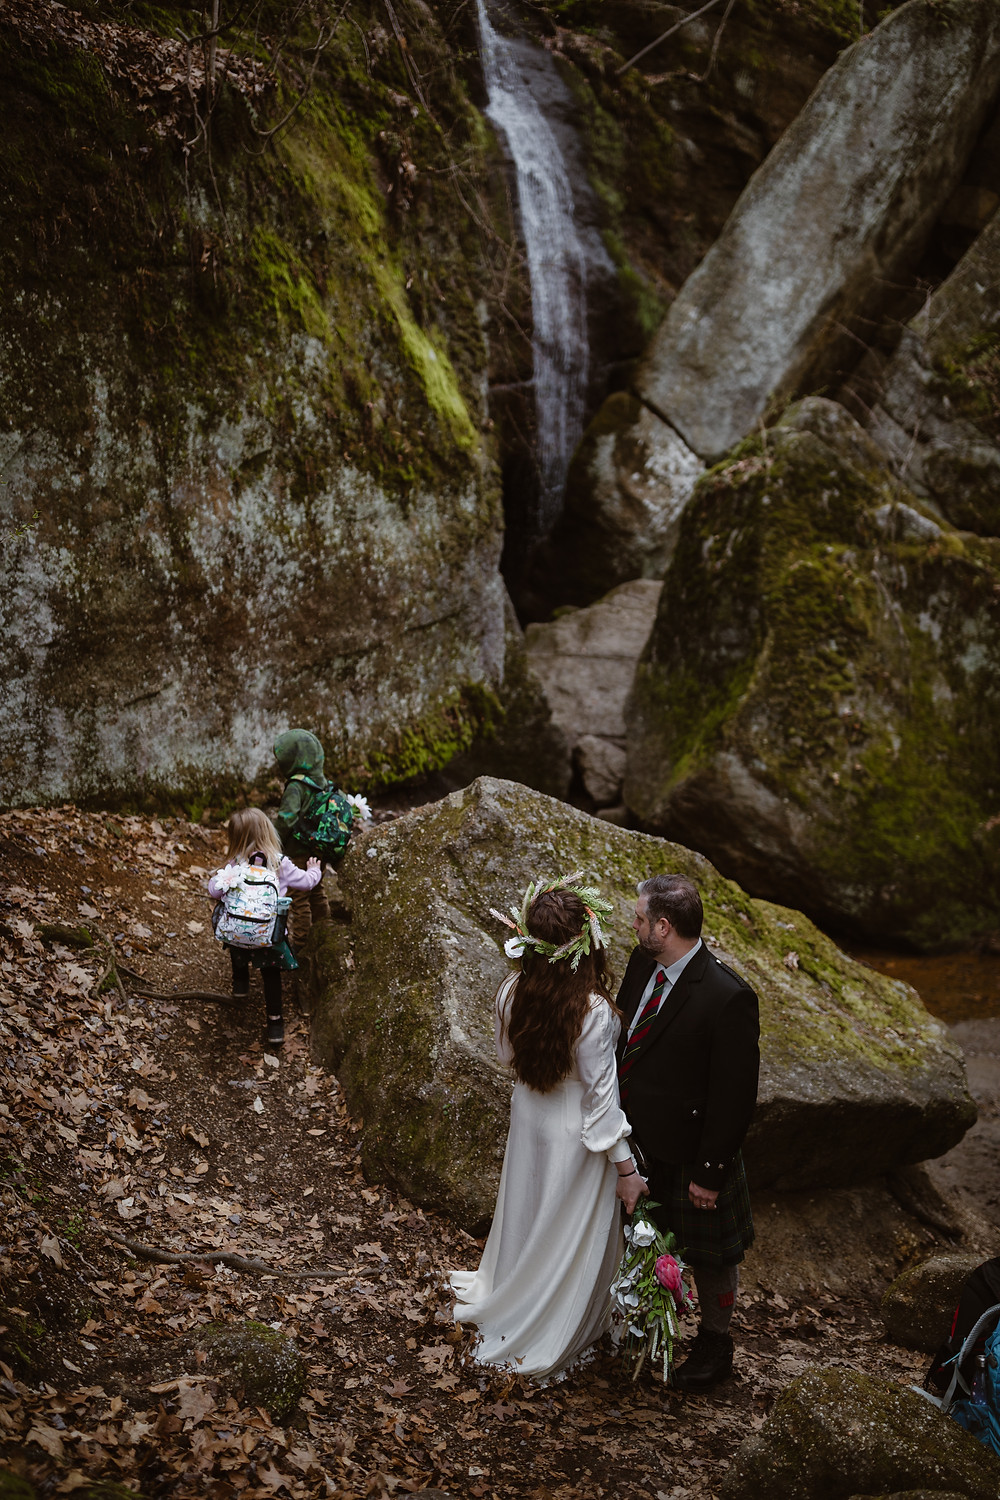 Bride and groom watching their kids play on their Nelson Kennedy Ledges Ohio elopement while standing in front of a rushing waterfall surrounded by large ledges covered in moss and fern